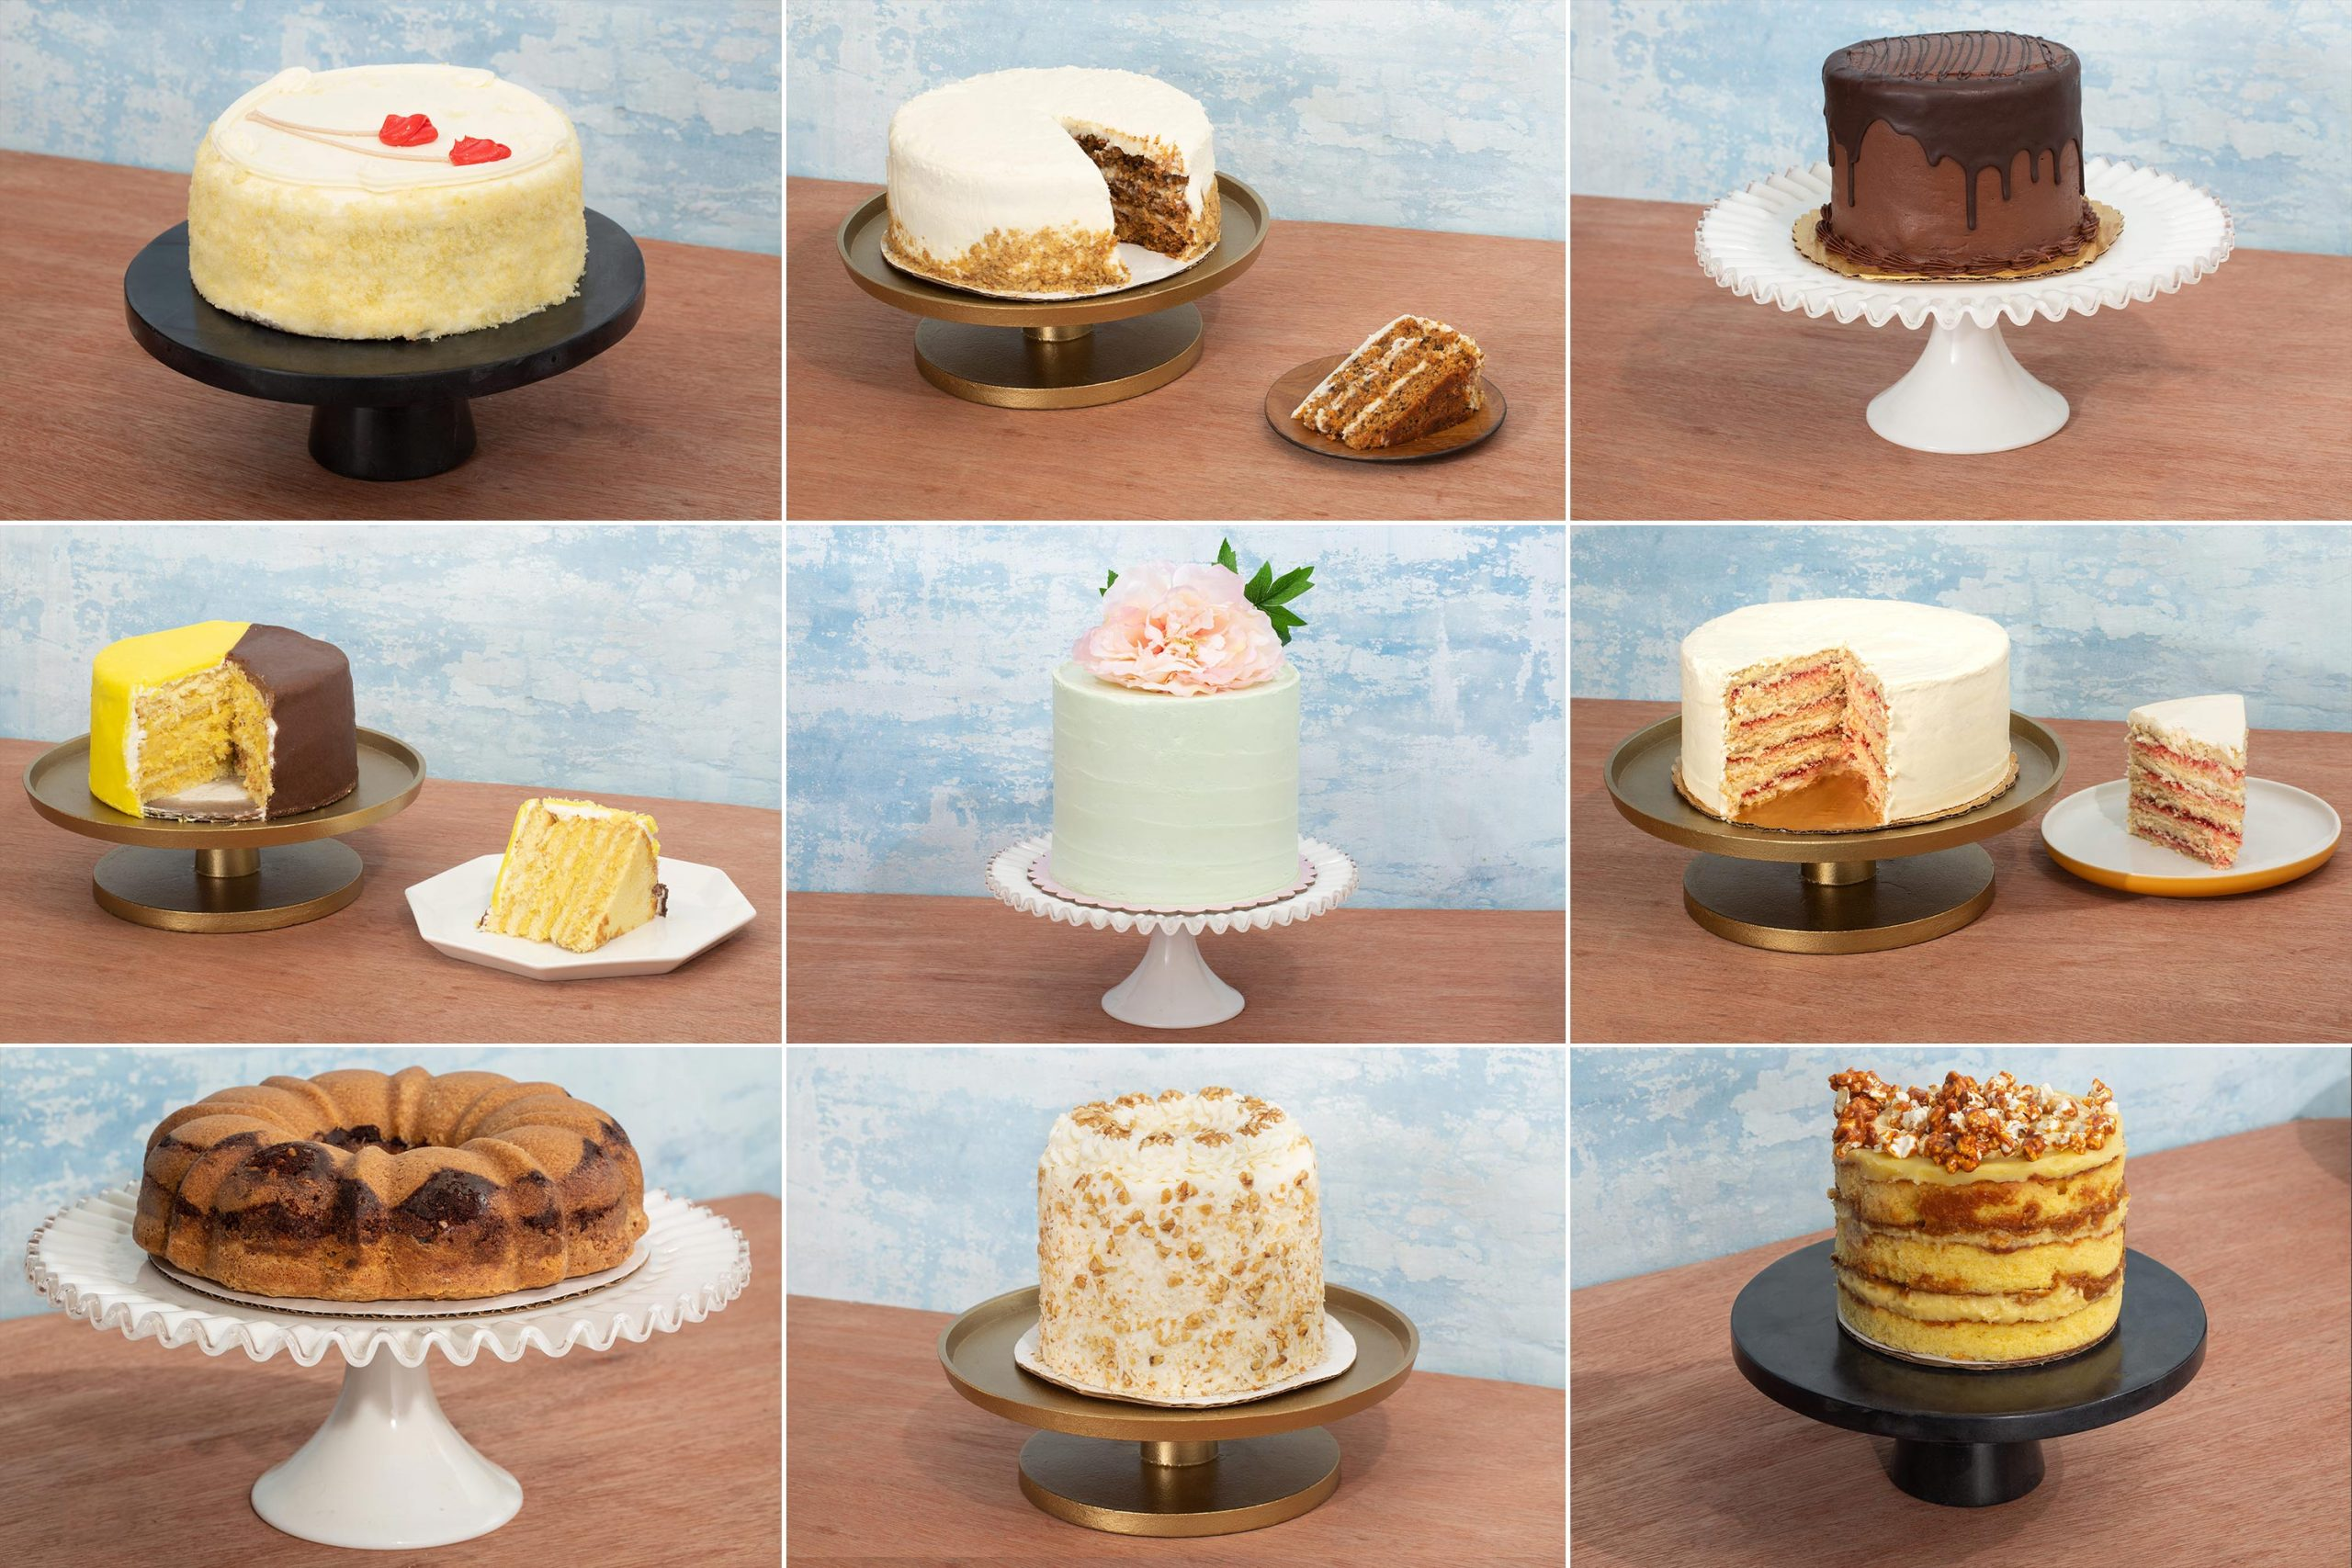 How to order the best cakes?